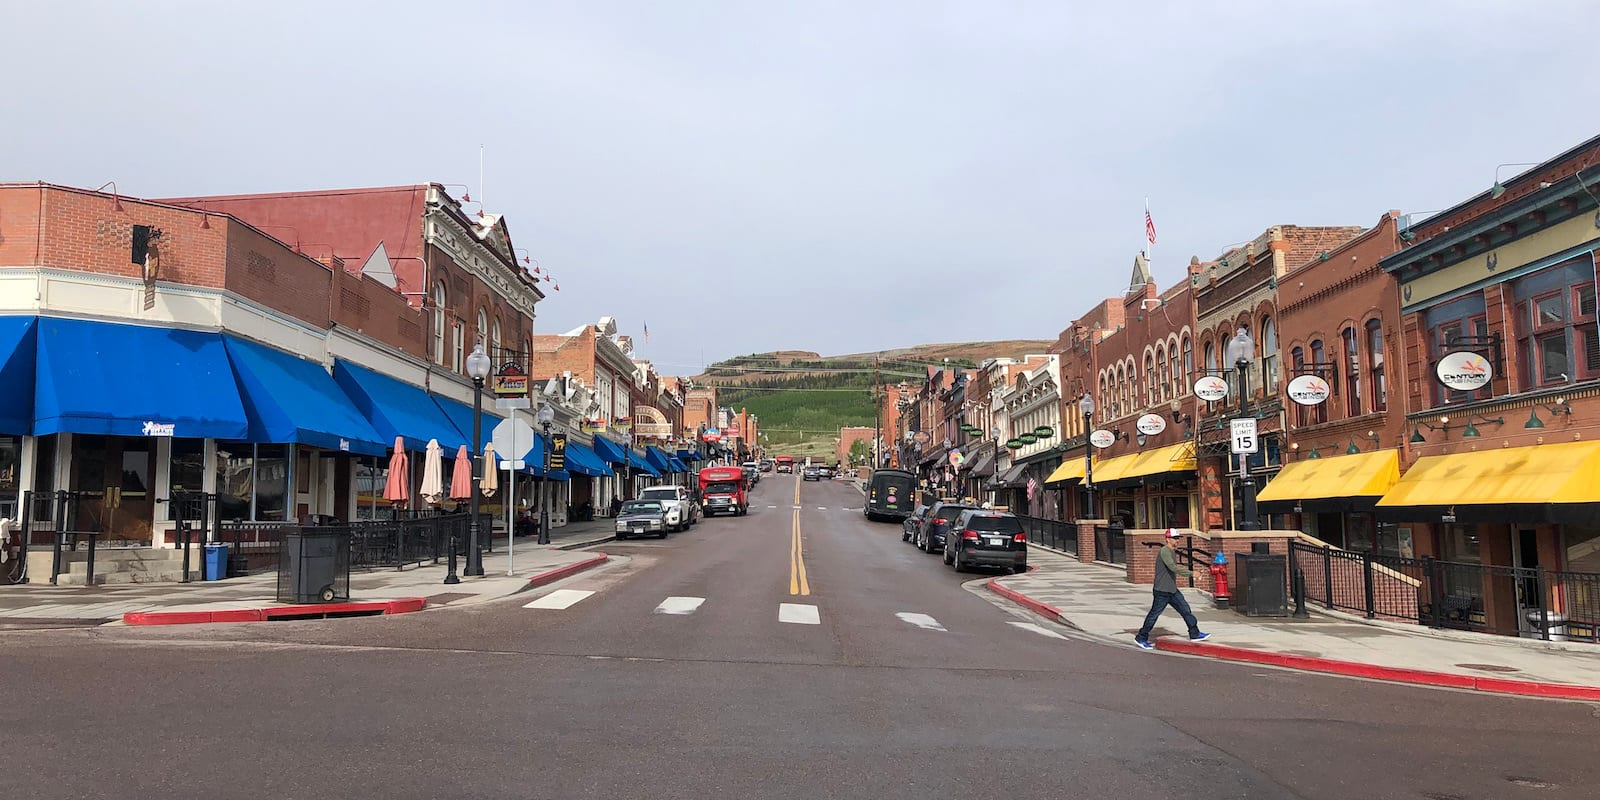 Colorado Casino Hotels Downtown Cripple Creek